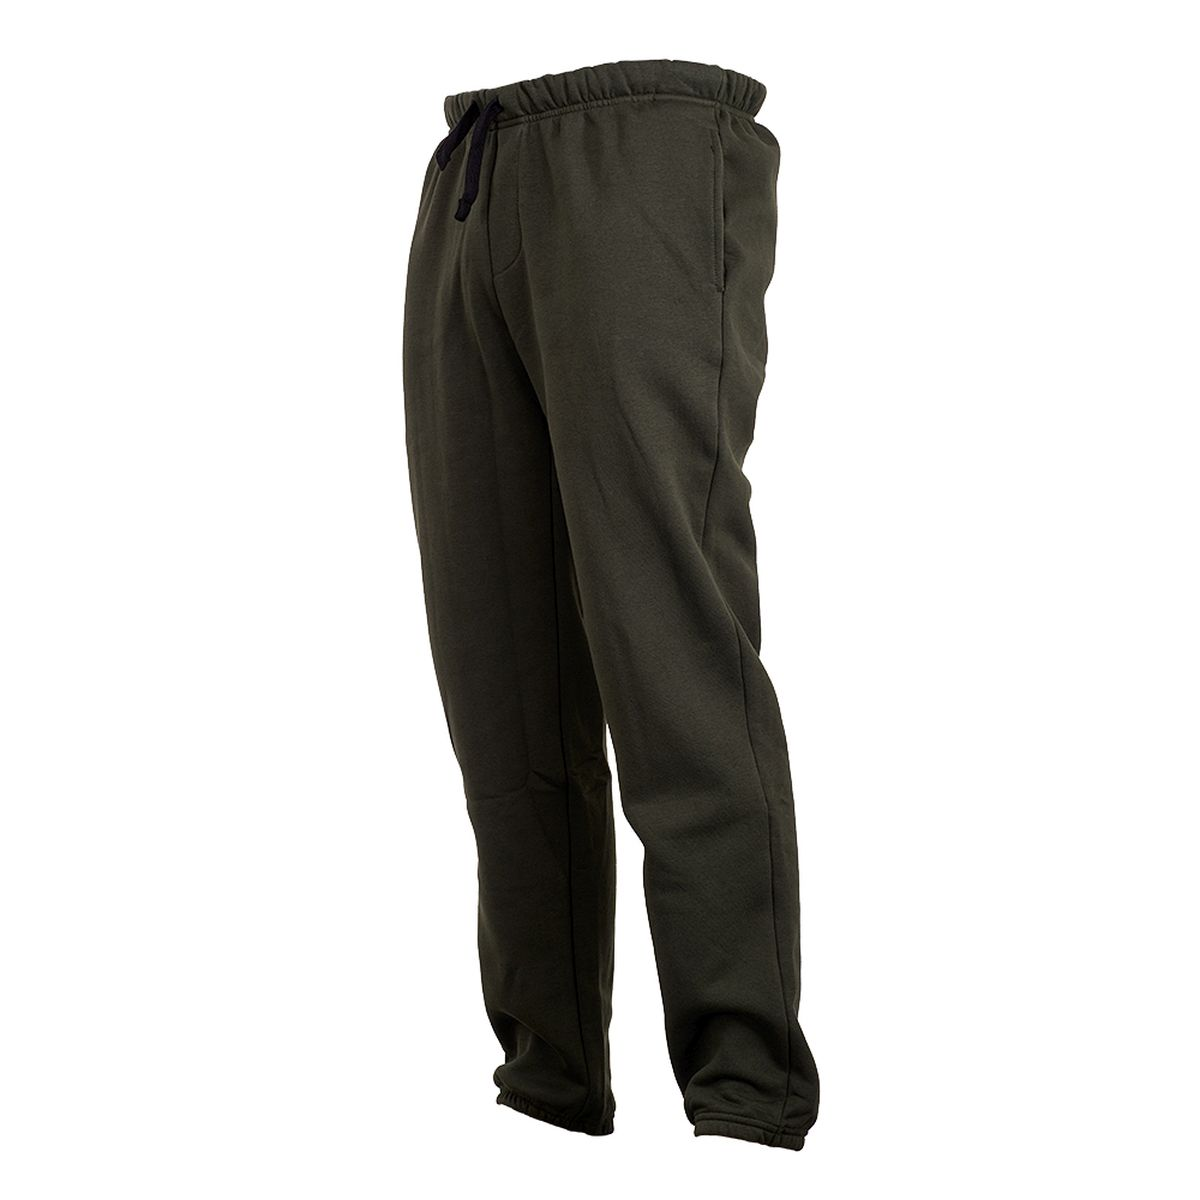 CARPSTYLE BANK JOGGERS - M